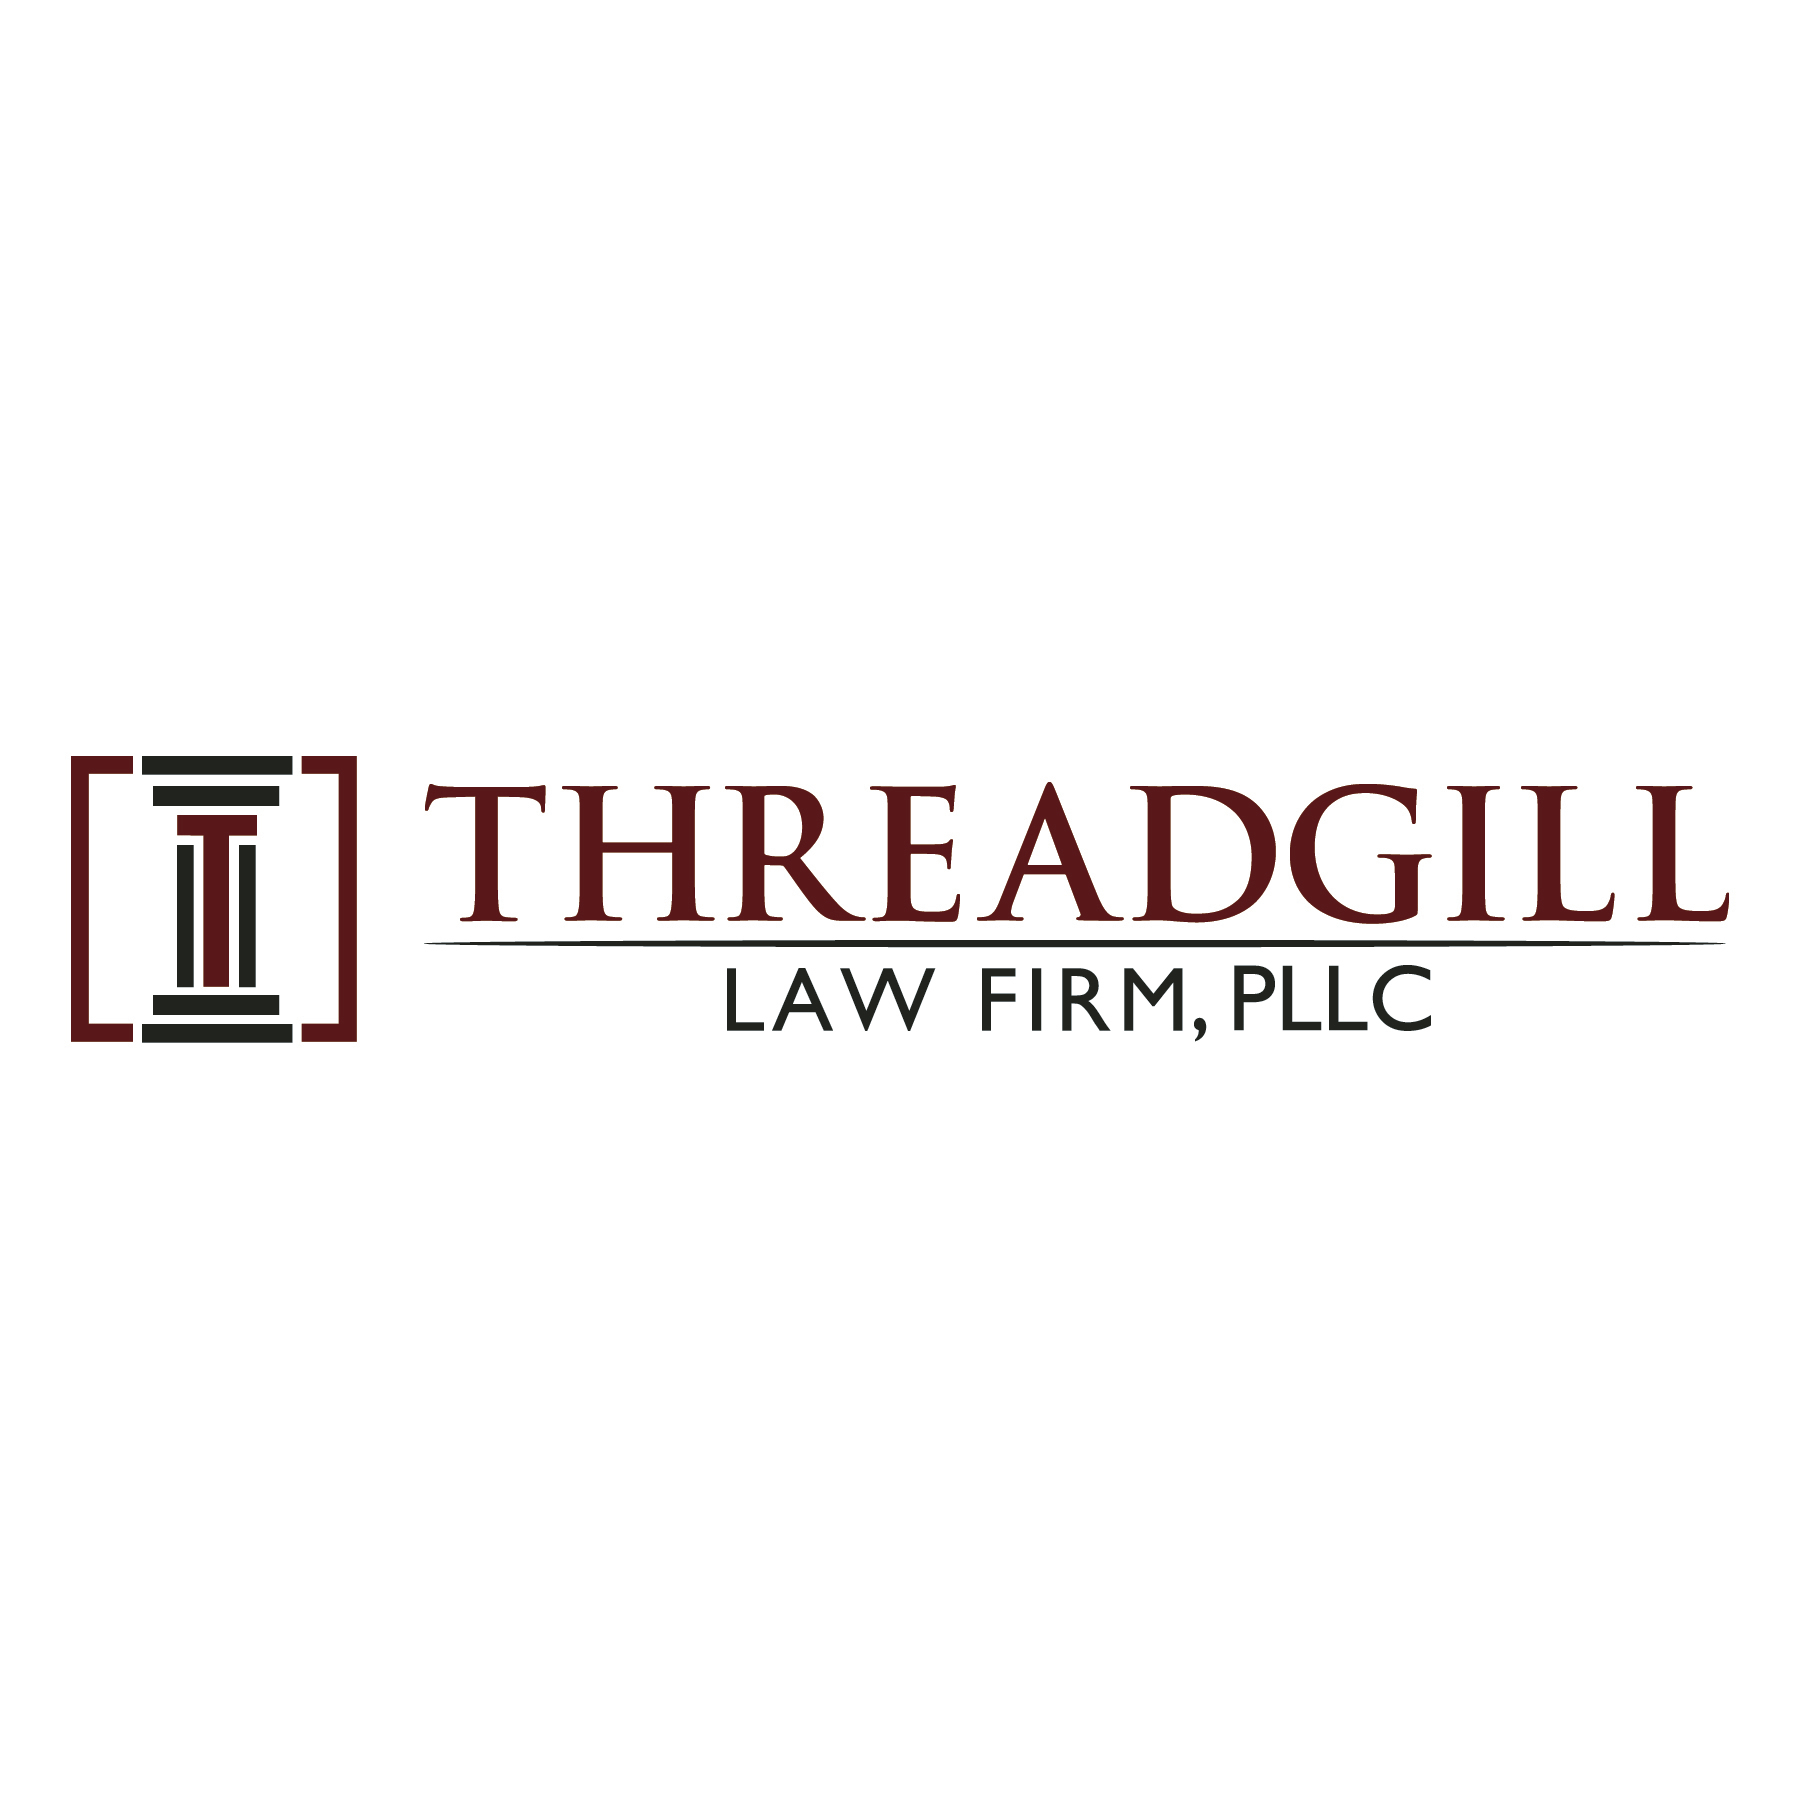 Threadgill Law Firm, PLLC